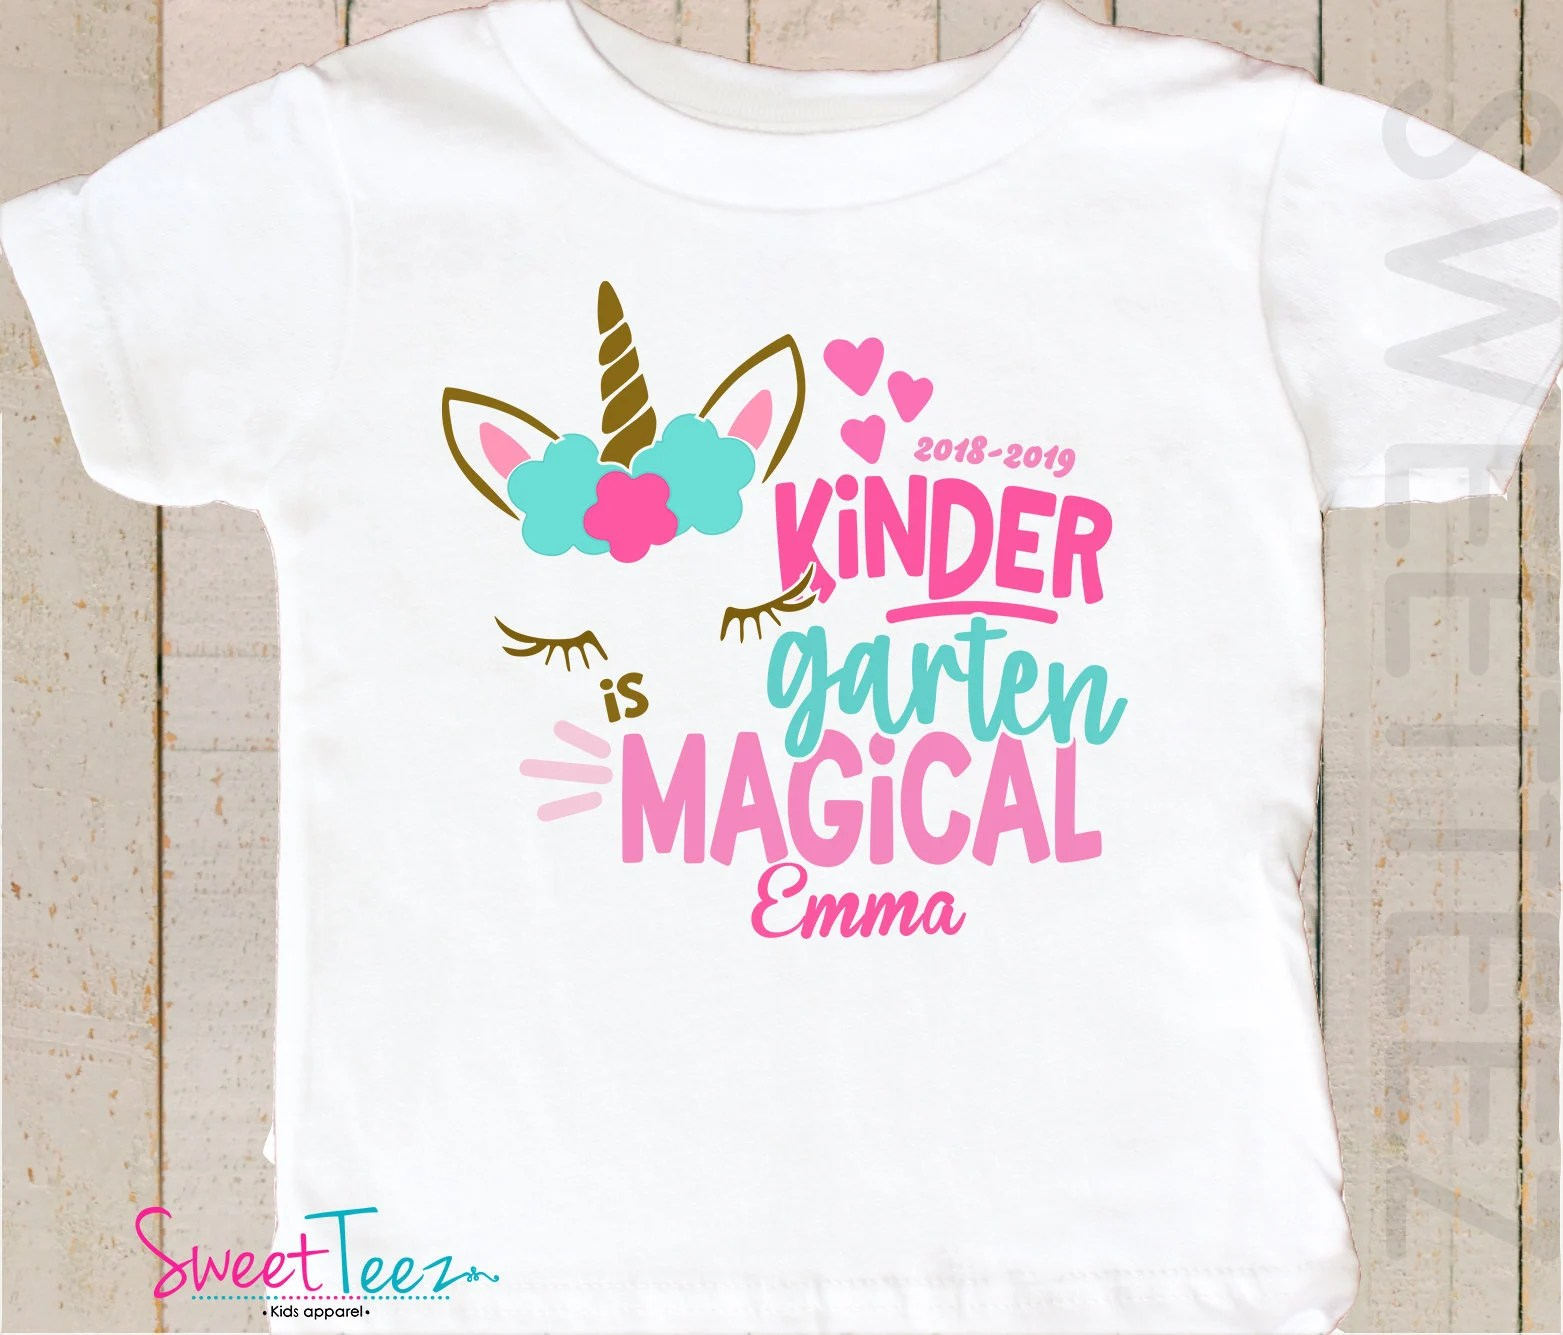 Big W School Shirts Kindergarten Shirt Kindergarten Shirt Unicorn Personalized Kindergarten Shirt Back To School Shirt Personalized Kindergarten T Shirt